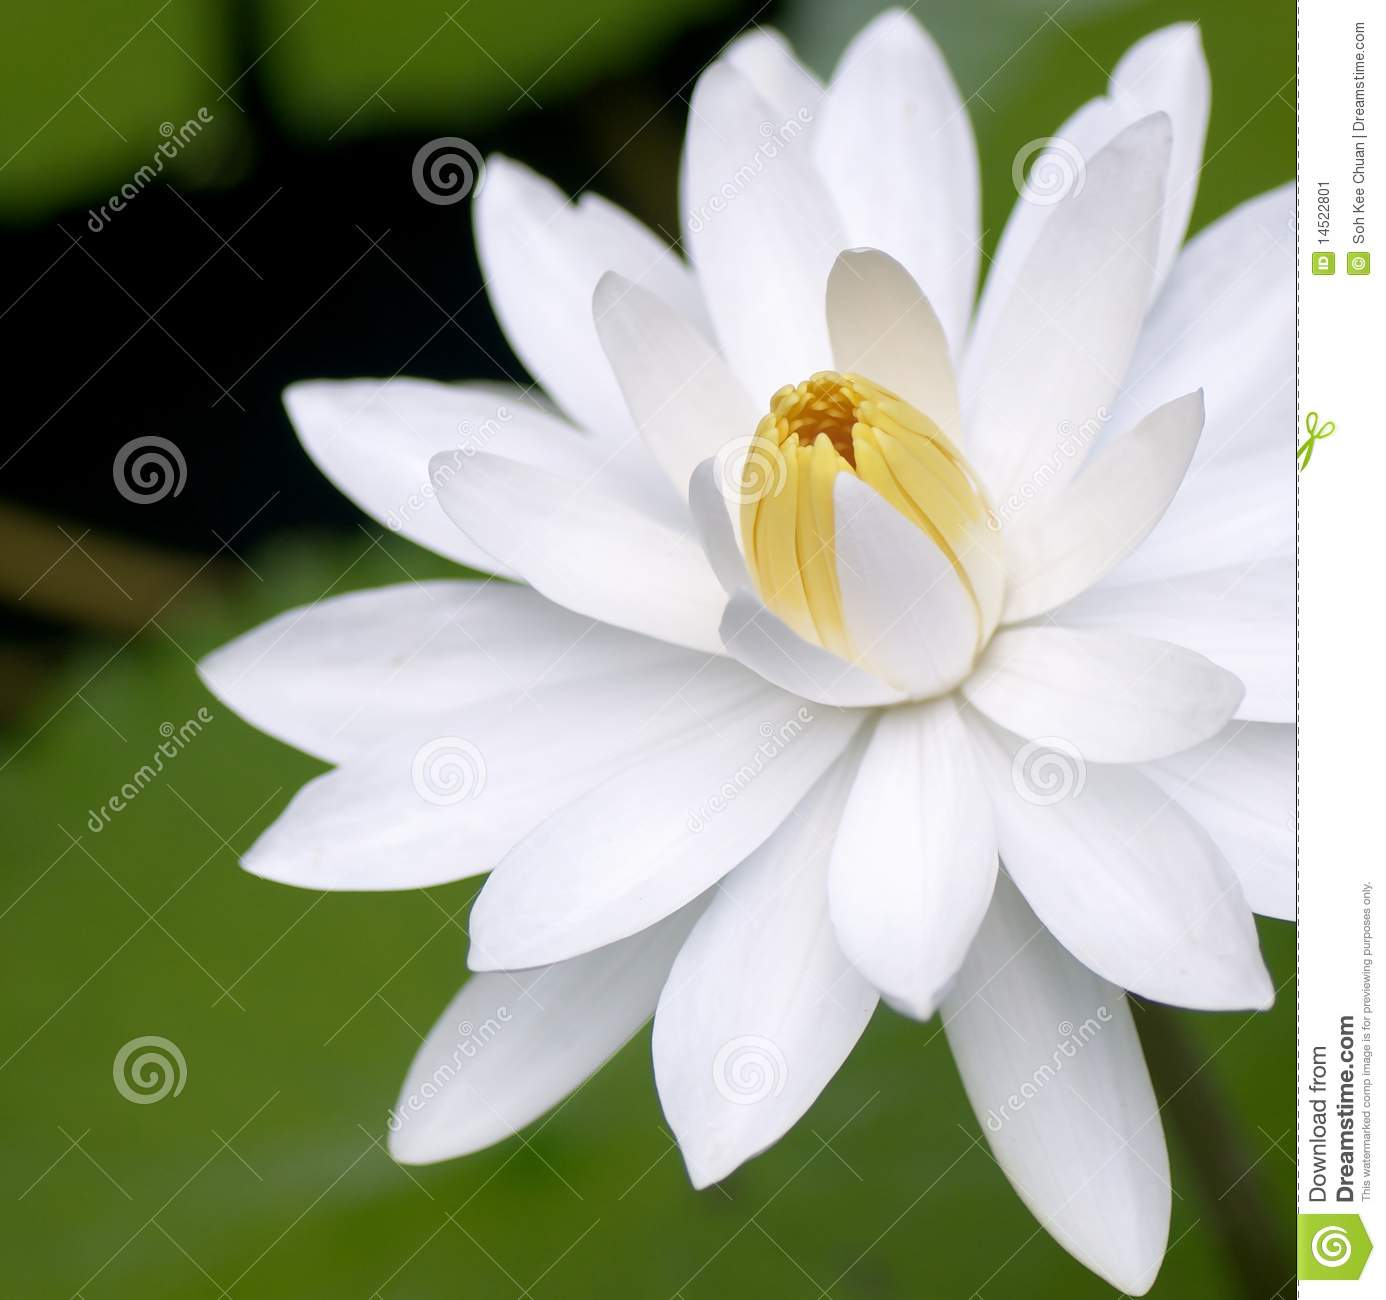 Blooming white water lily flower stock image image of blooming blooming white water lily flower izmirmasajfo Choice Image